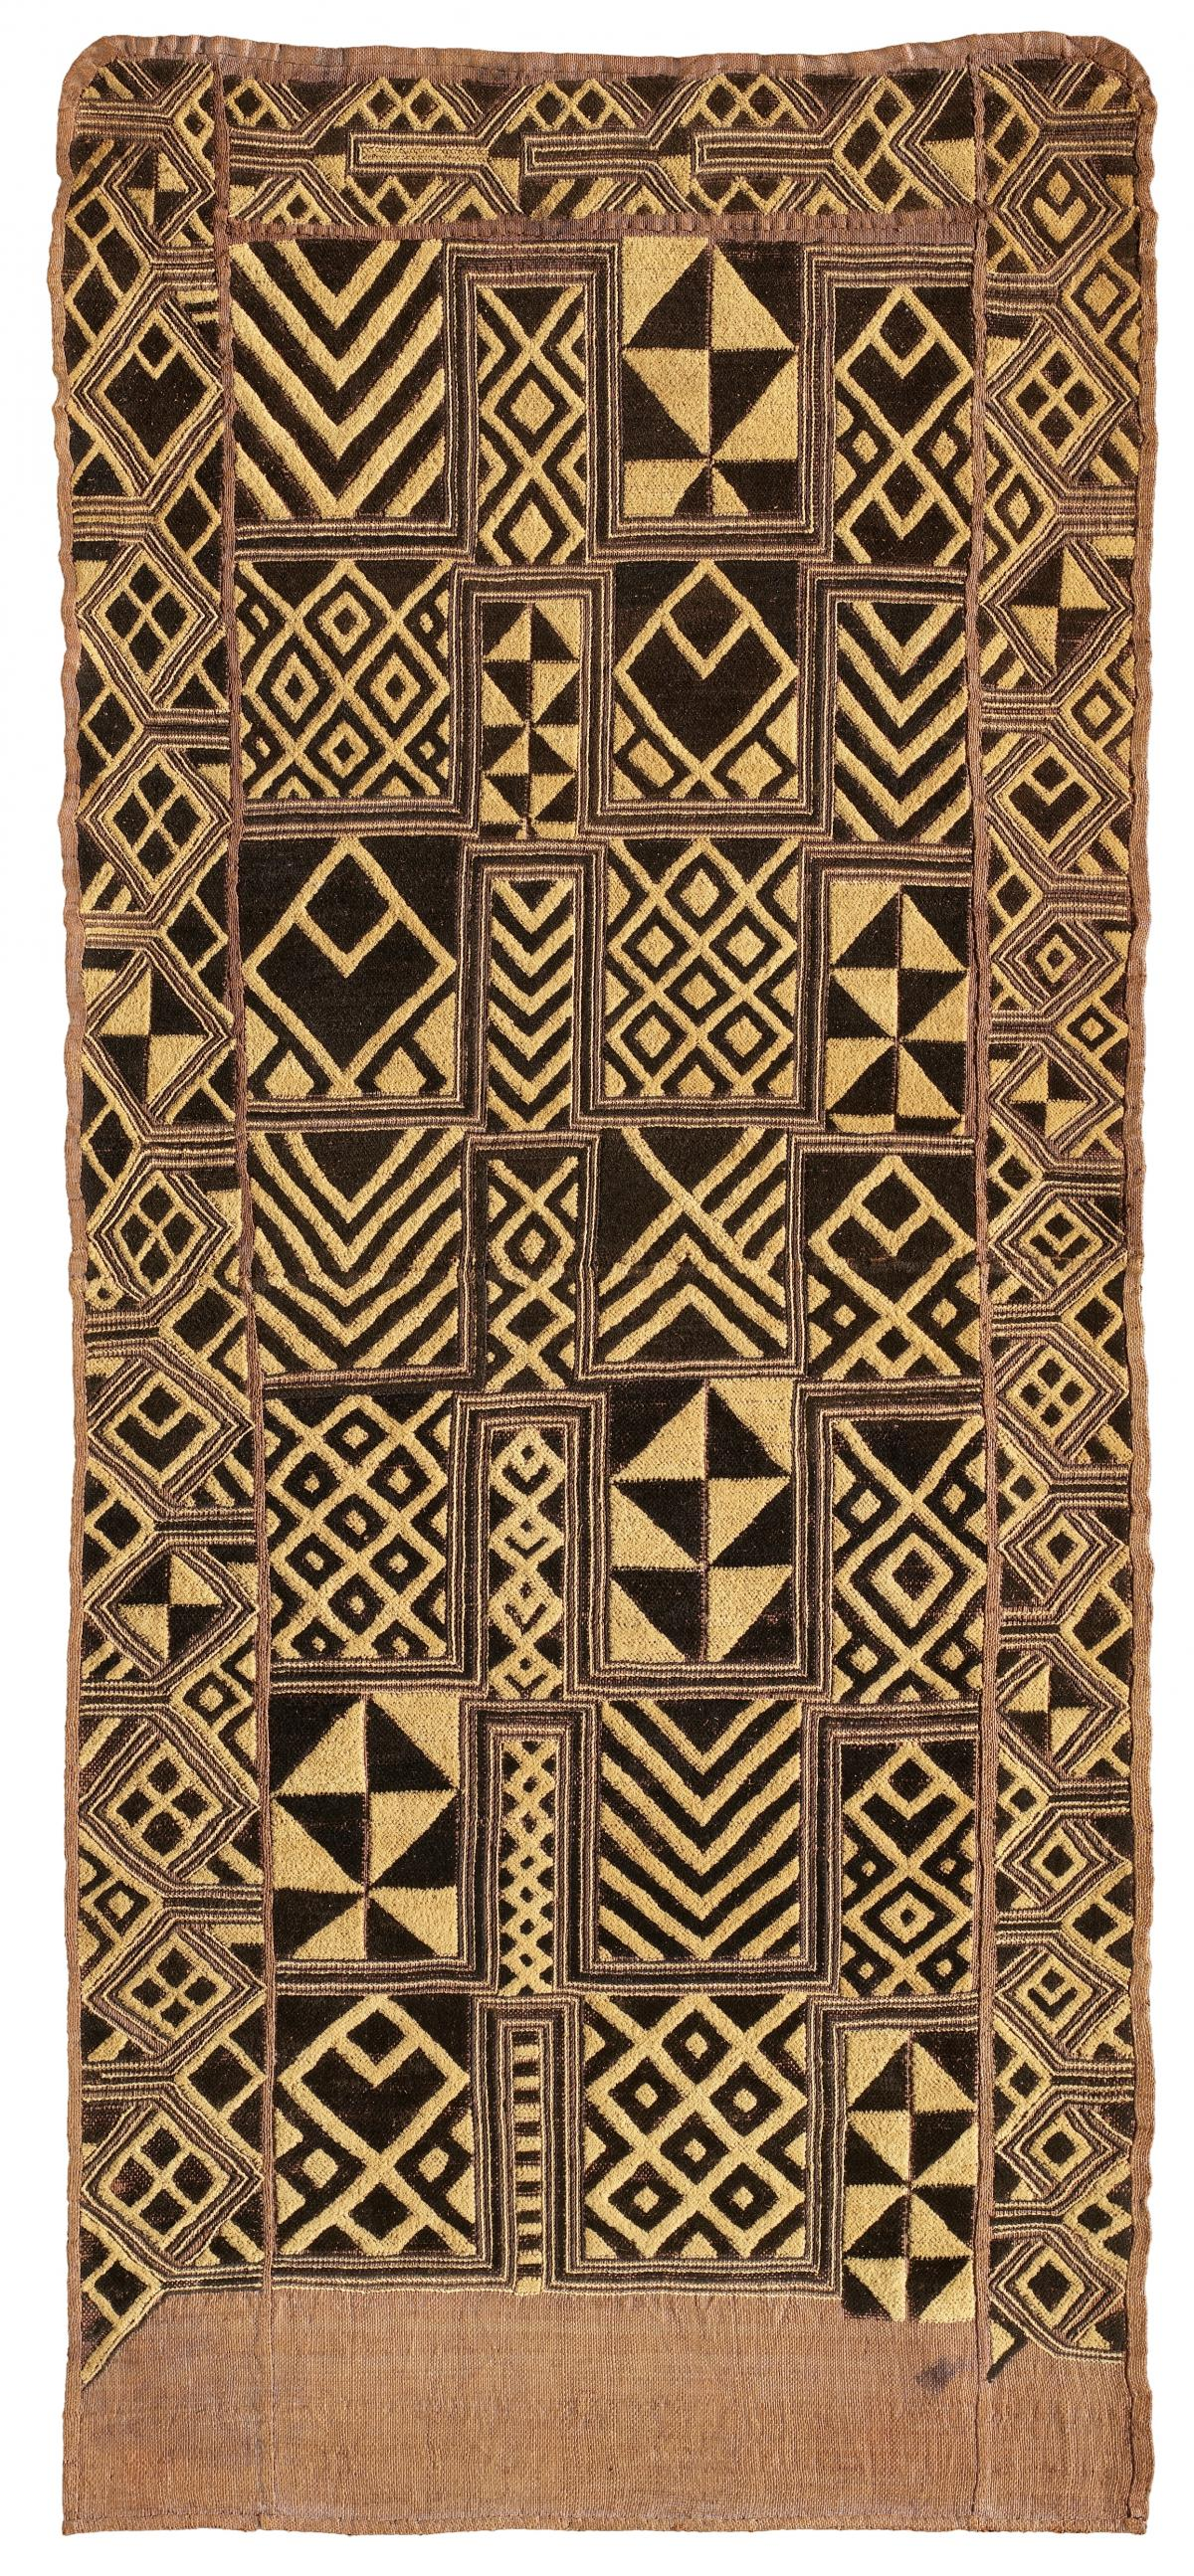 This assertive pattern, dated to 1912‑1942, shows how Kuba fabrics were meant to reinforce royal power by capturing the eye and not allowing it to rest.